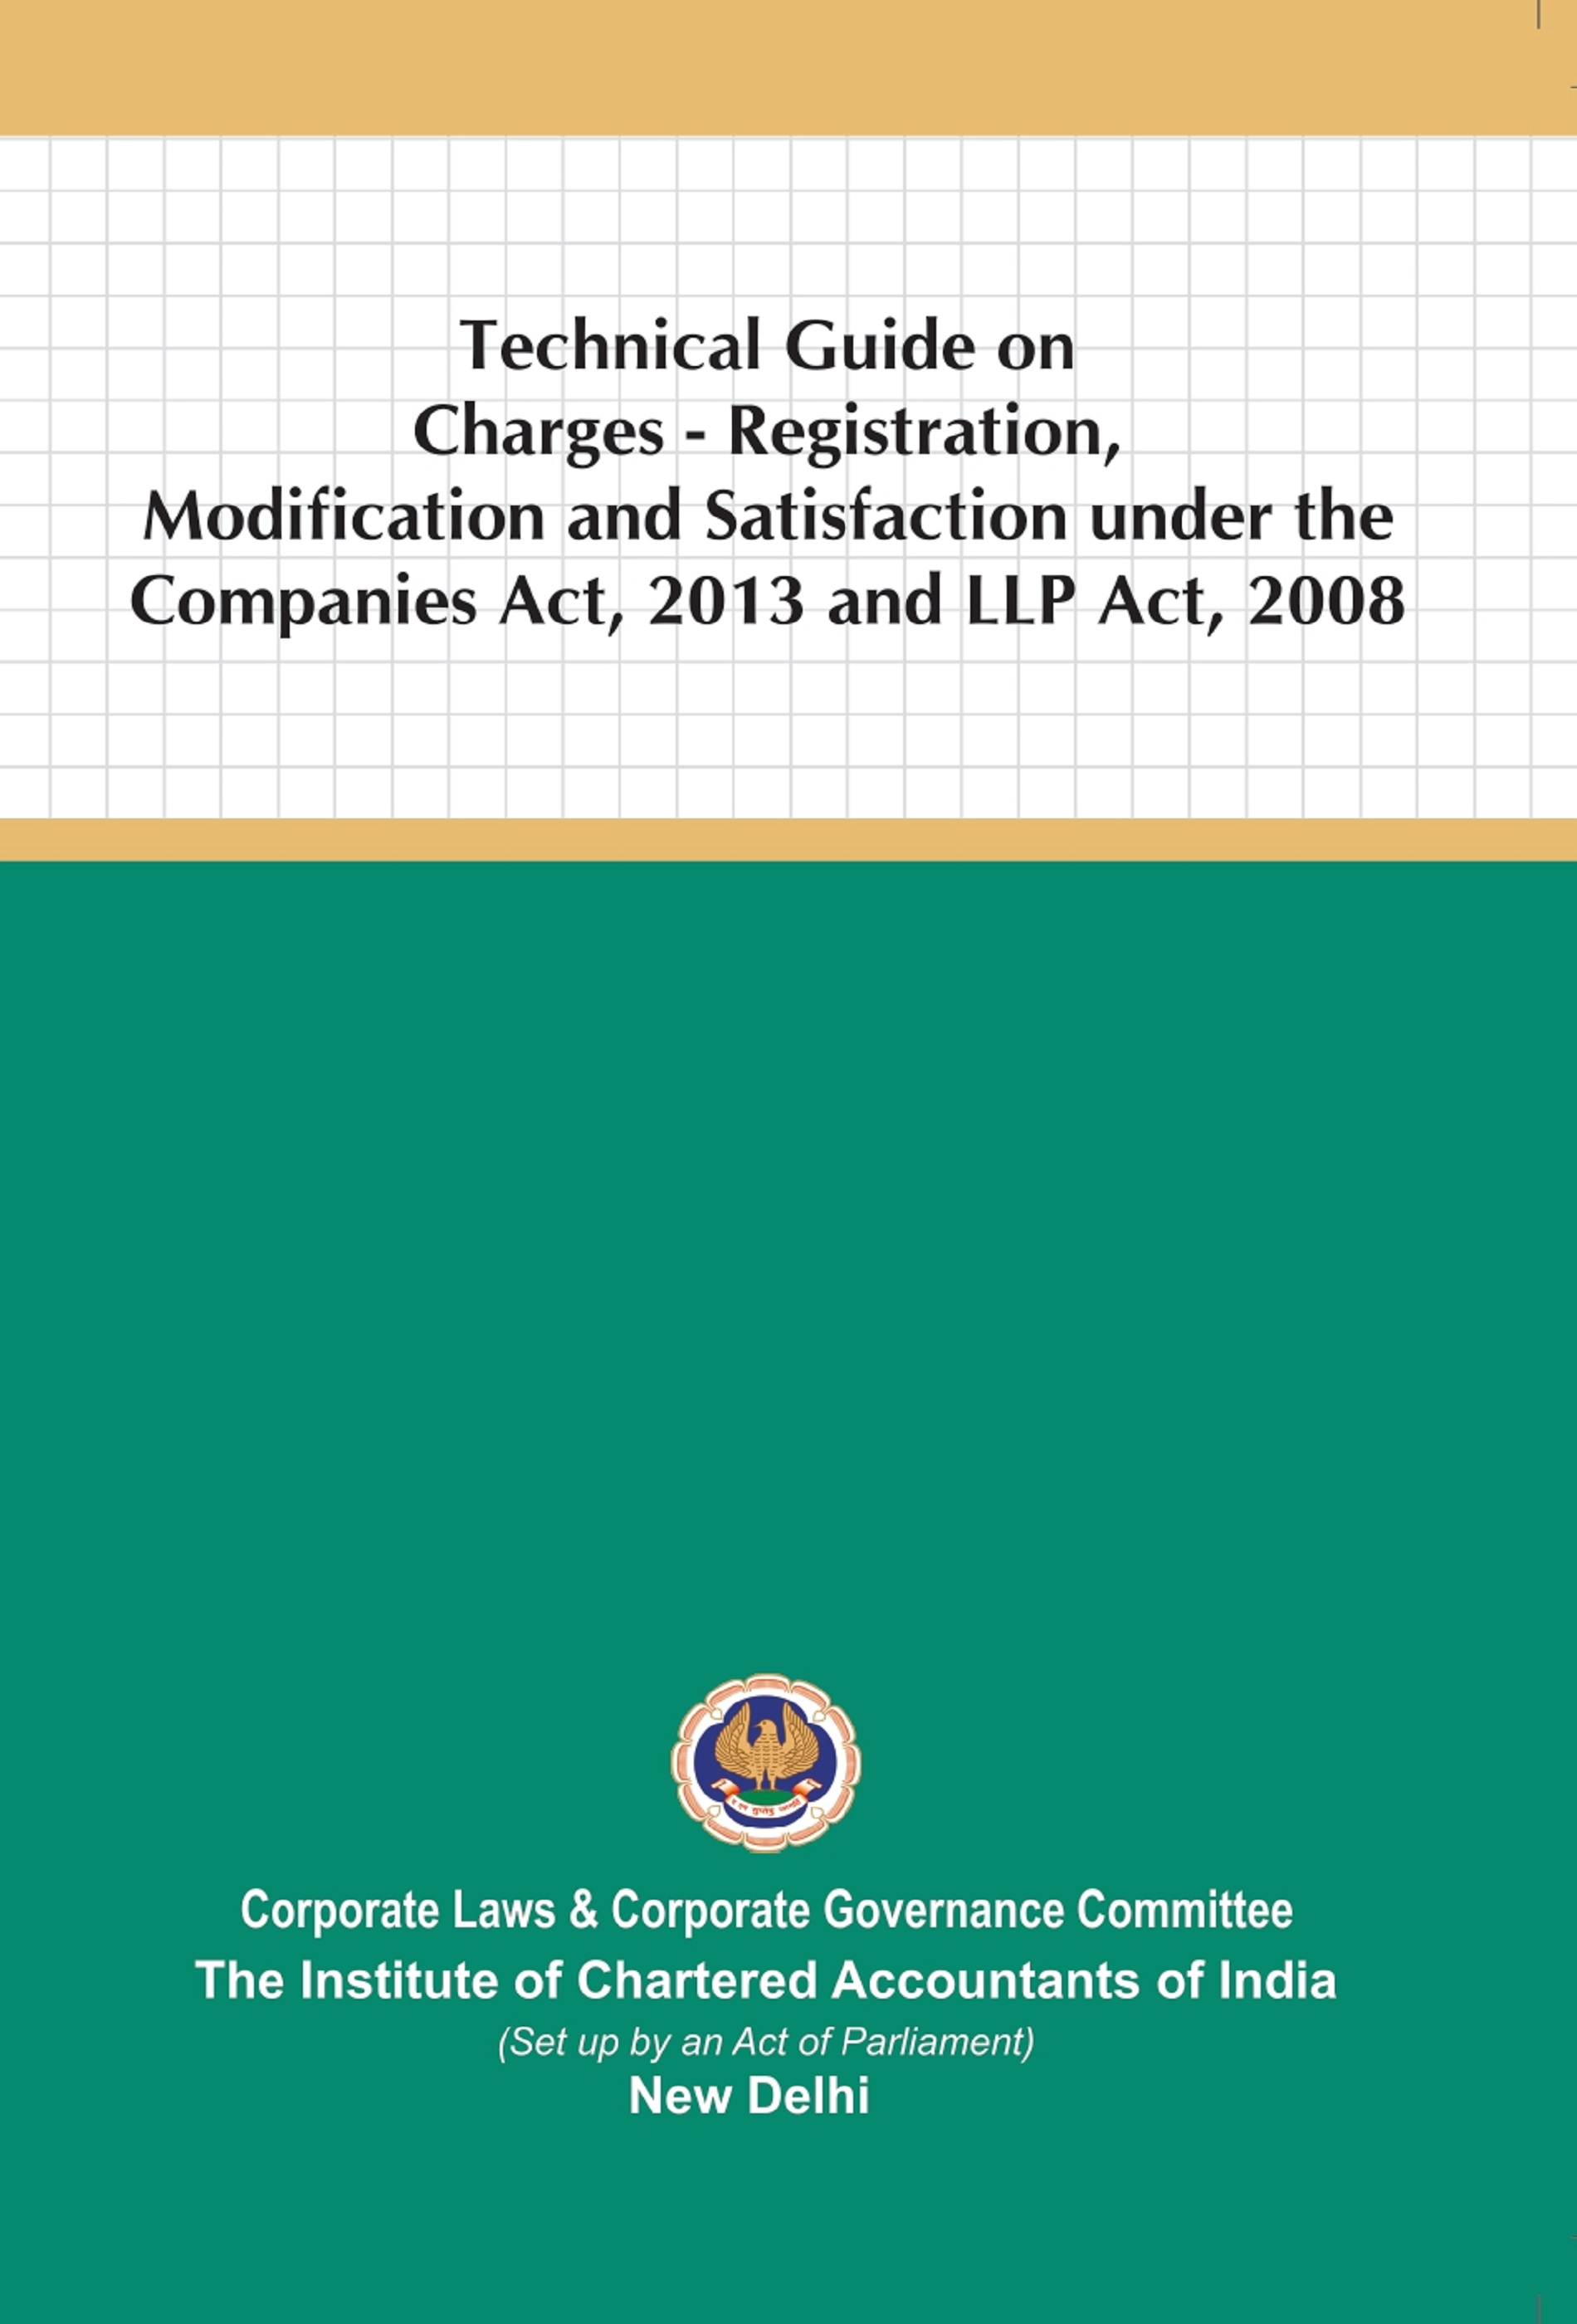 Technical Guide on Charges - Registration, Modification and Satisfaction under the Companies Act, 2013 and LLP Act, 2008 (January, 2021)